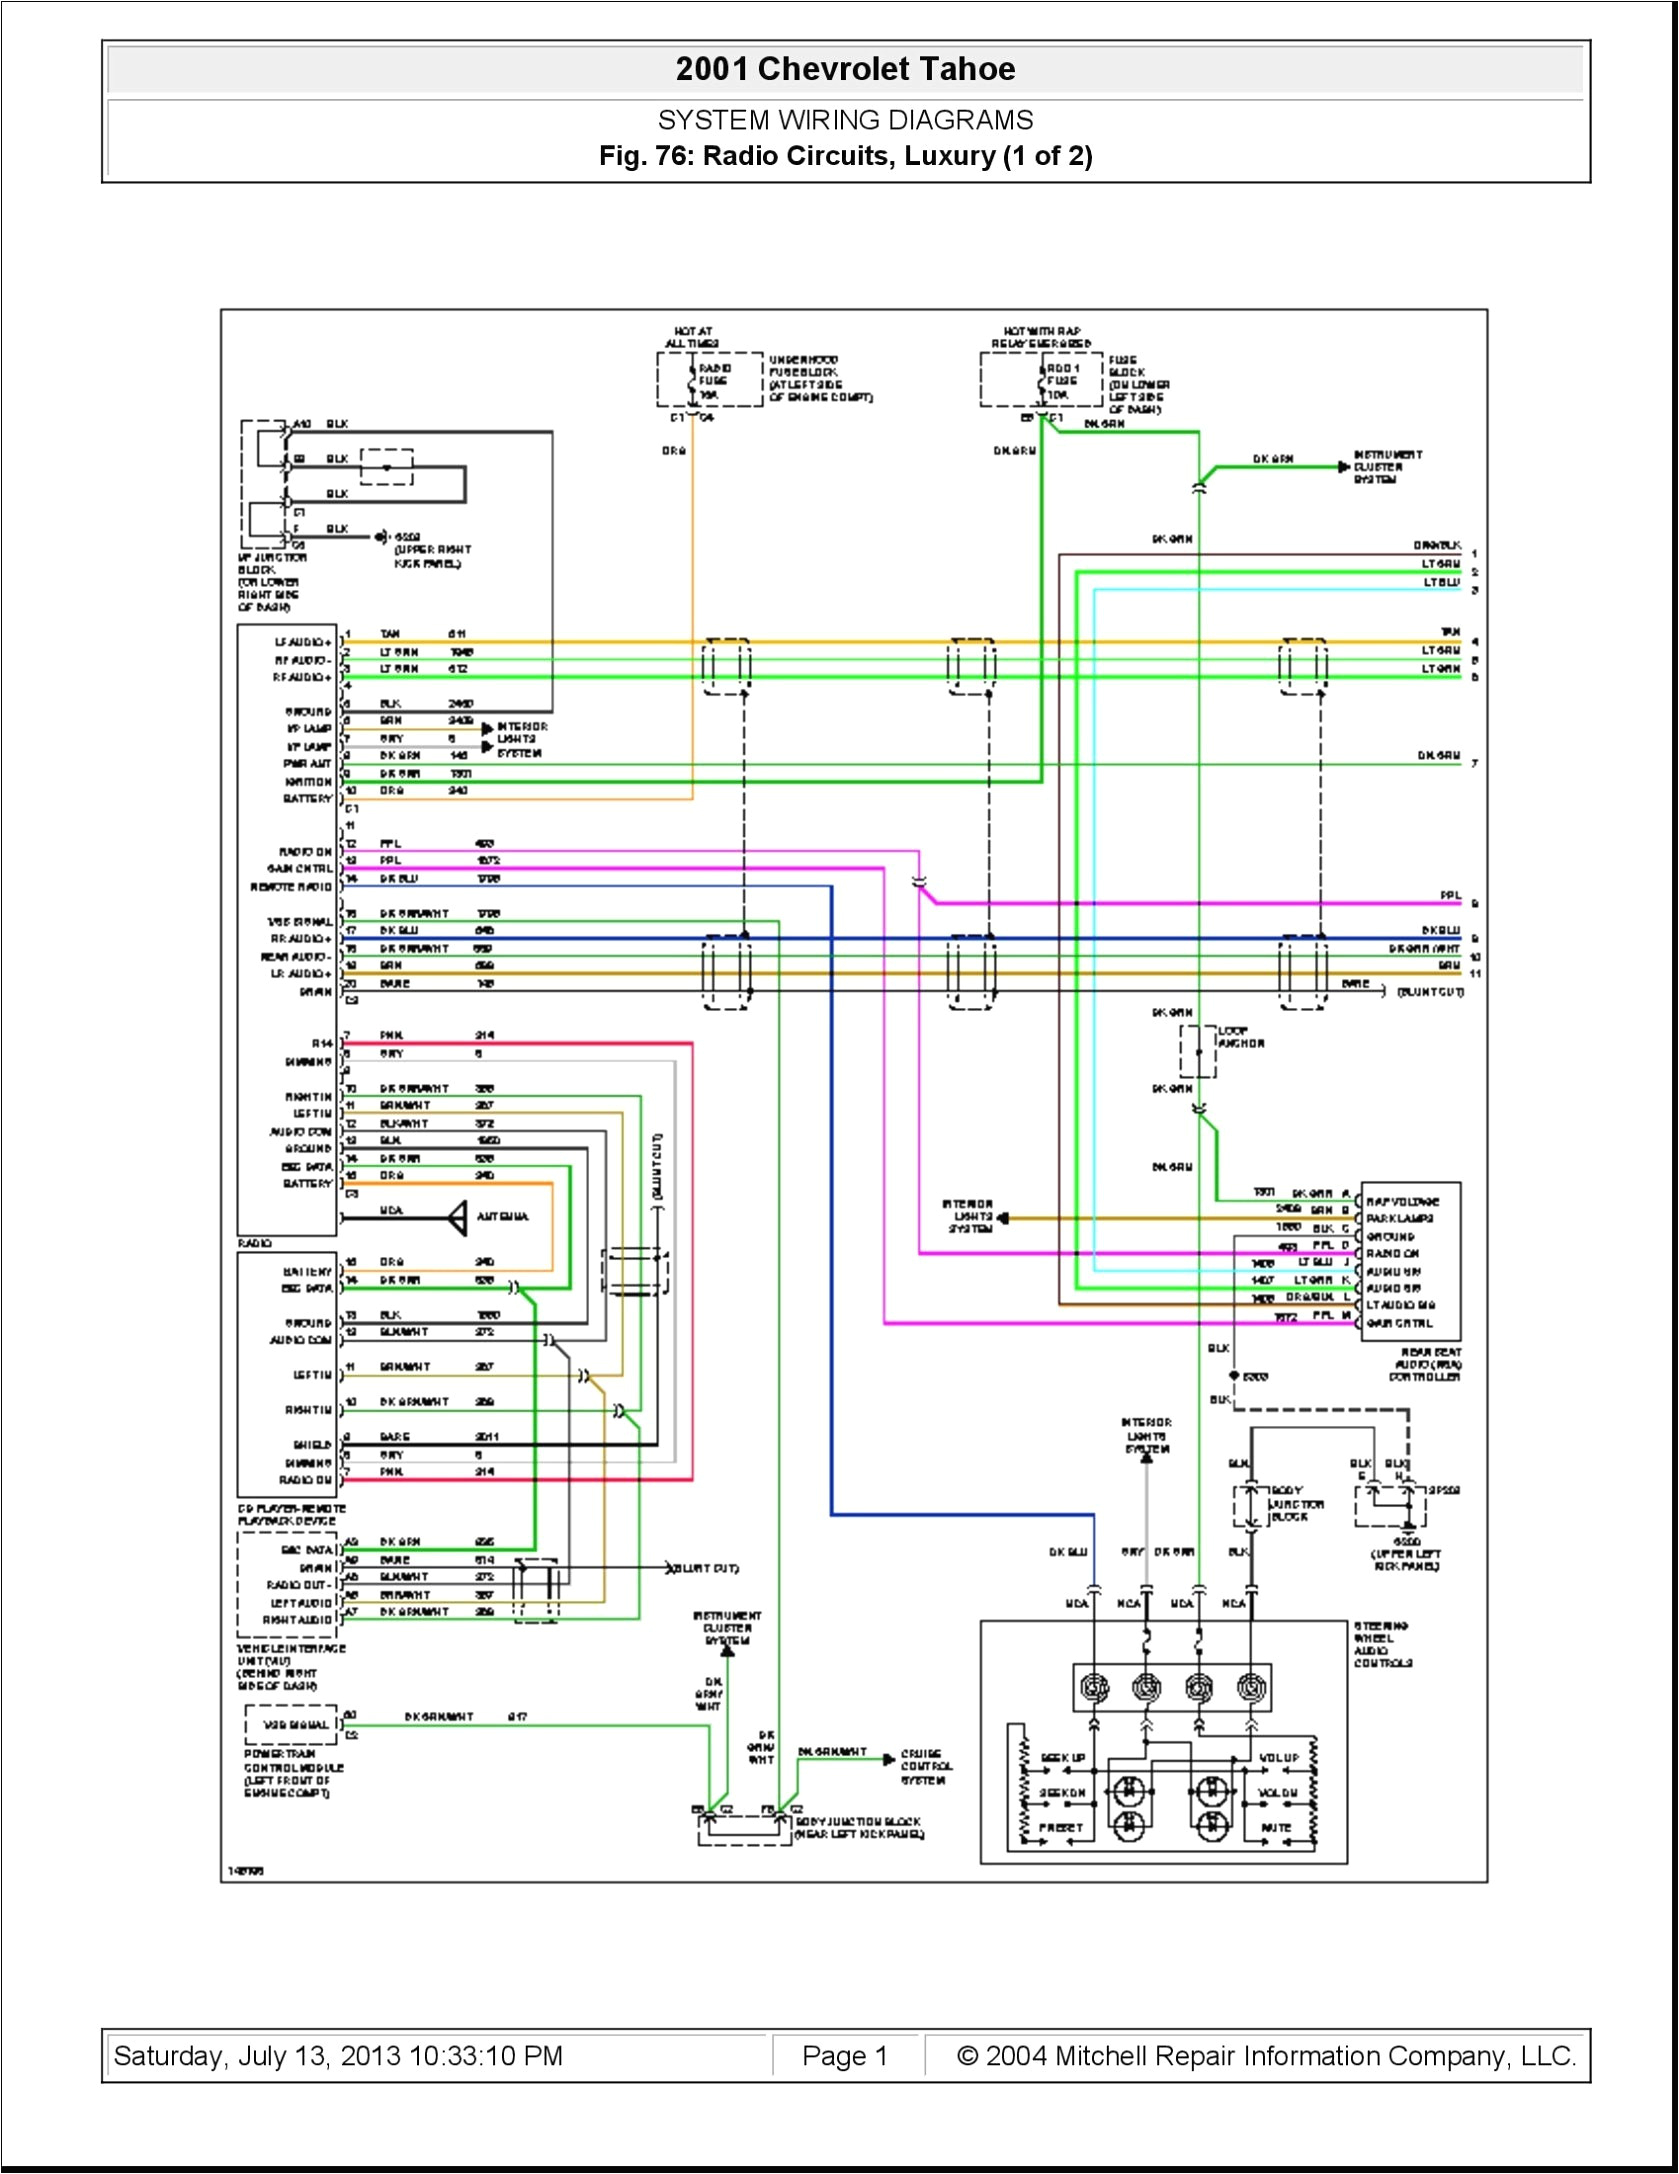 2006 chevy equinox transmission diagram on chevrolet abs pump 2004 chevy equinox stereo wiring diagram 2004 chevy equinox wiring diagram